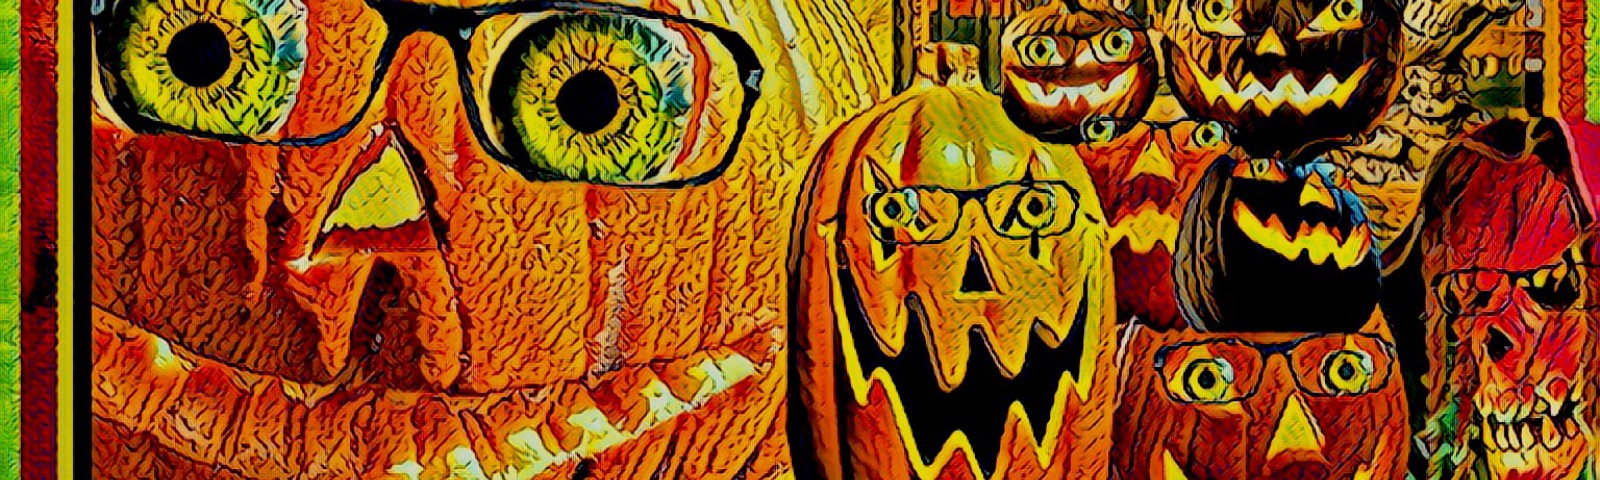 Jack-o'-lanterns and other Halloween figures wearing librarians' glasses and smiling broadly